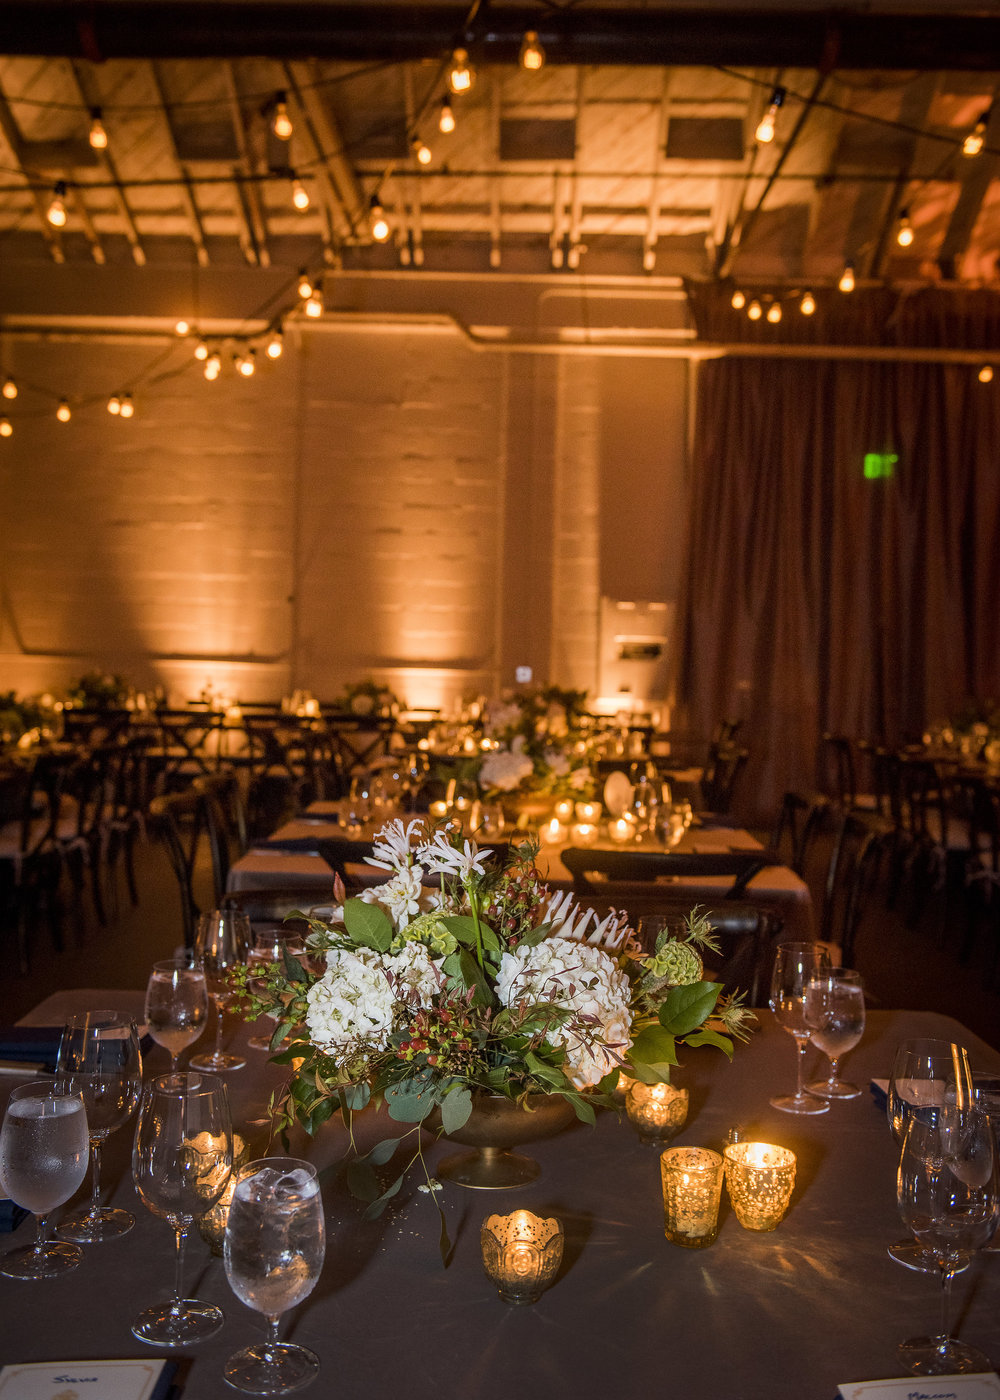 www.santabarbarawedding.com | The Prop House | The Tent Merchant | Rehearsal Dinner Location | Wedding Reception Venue